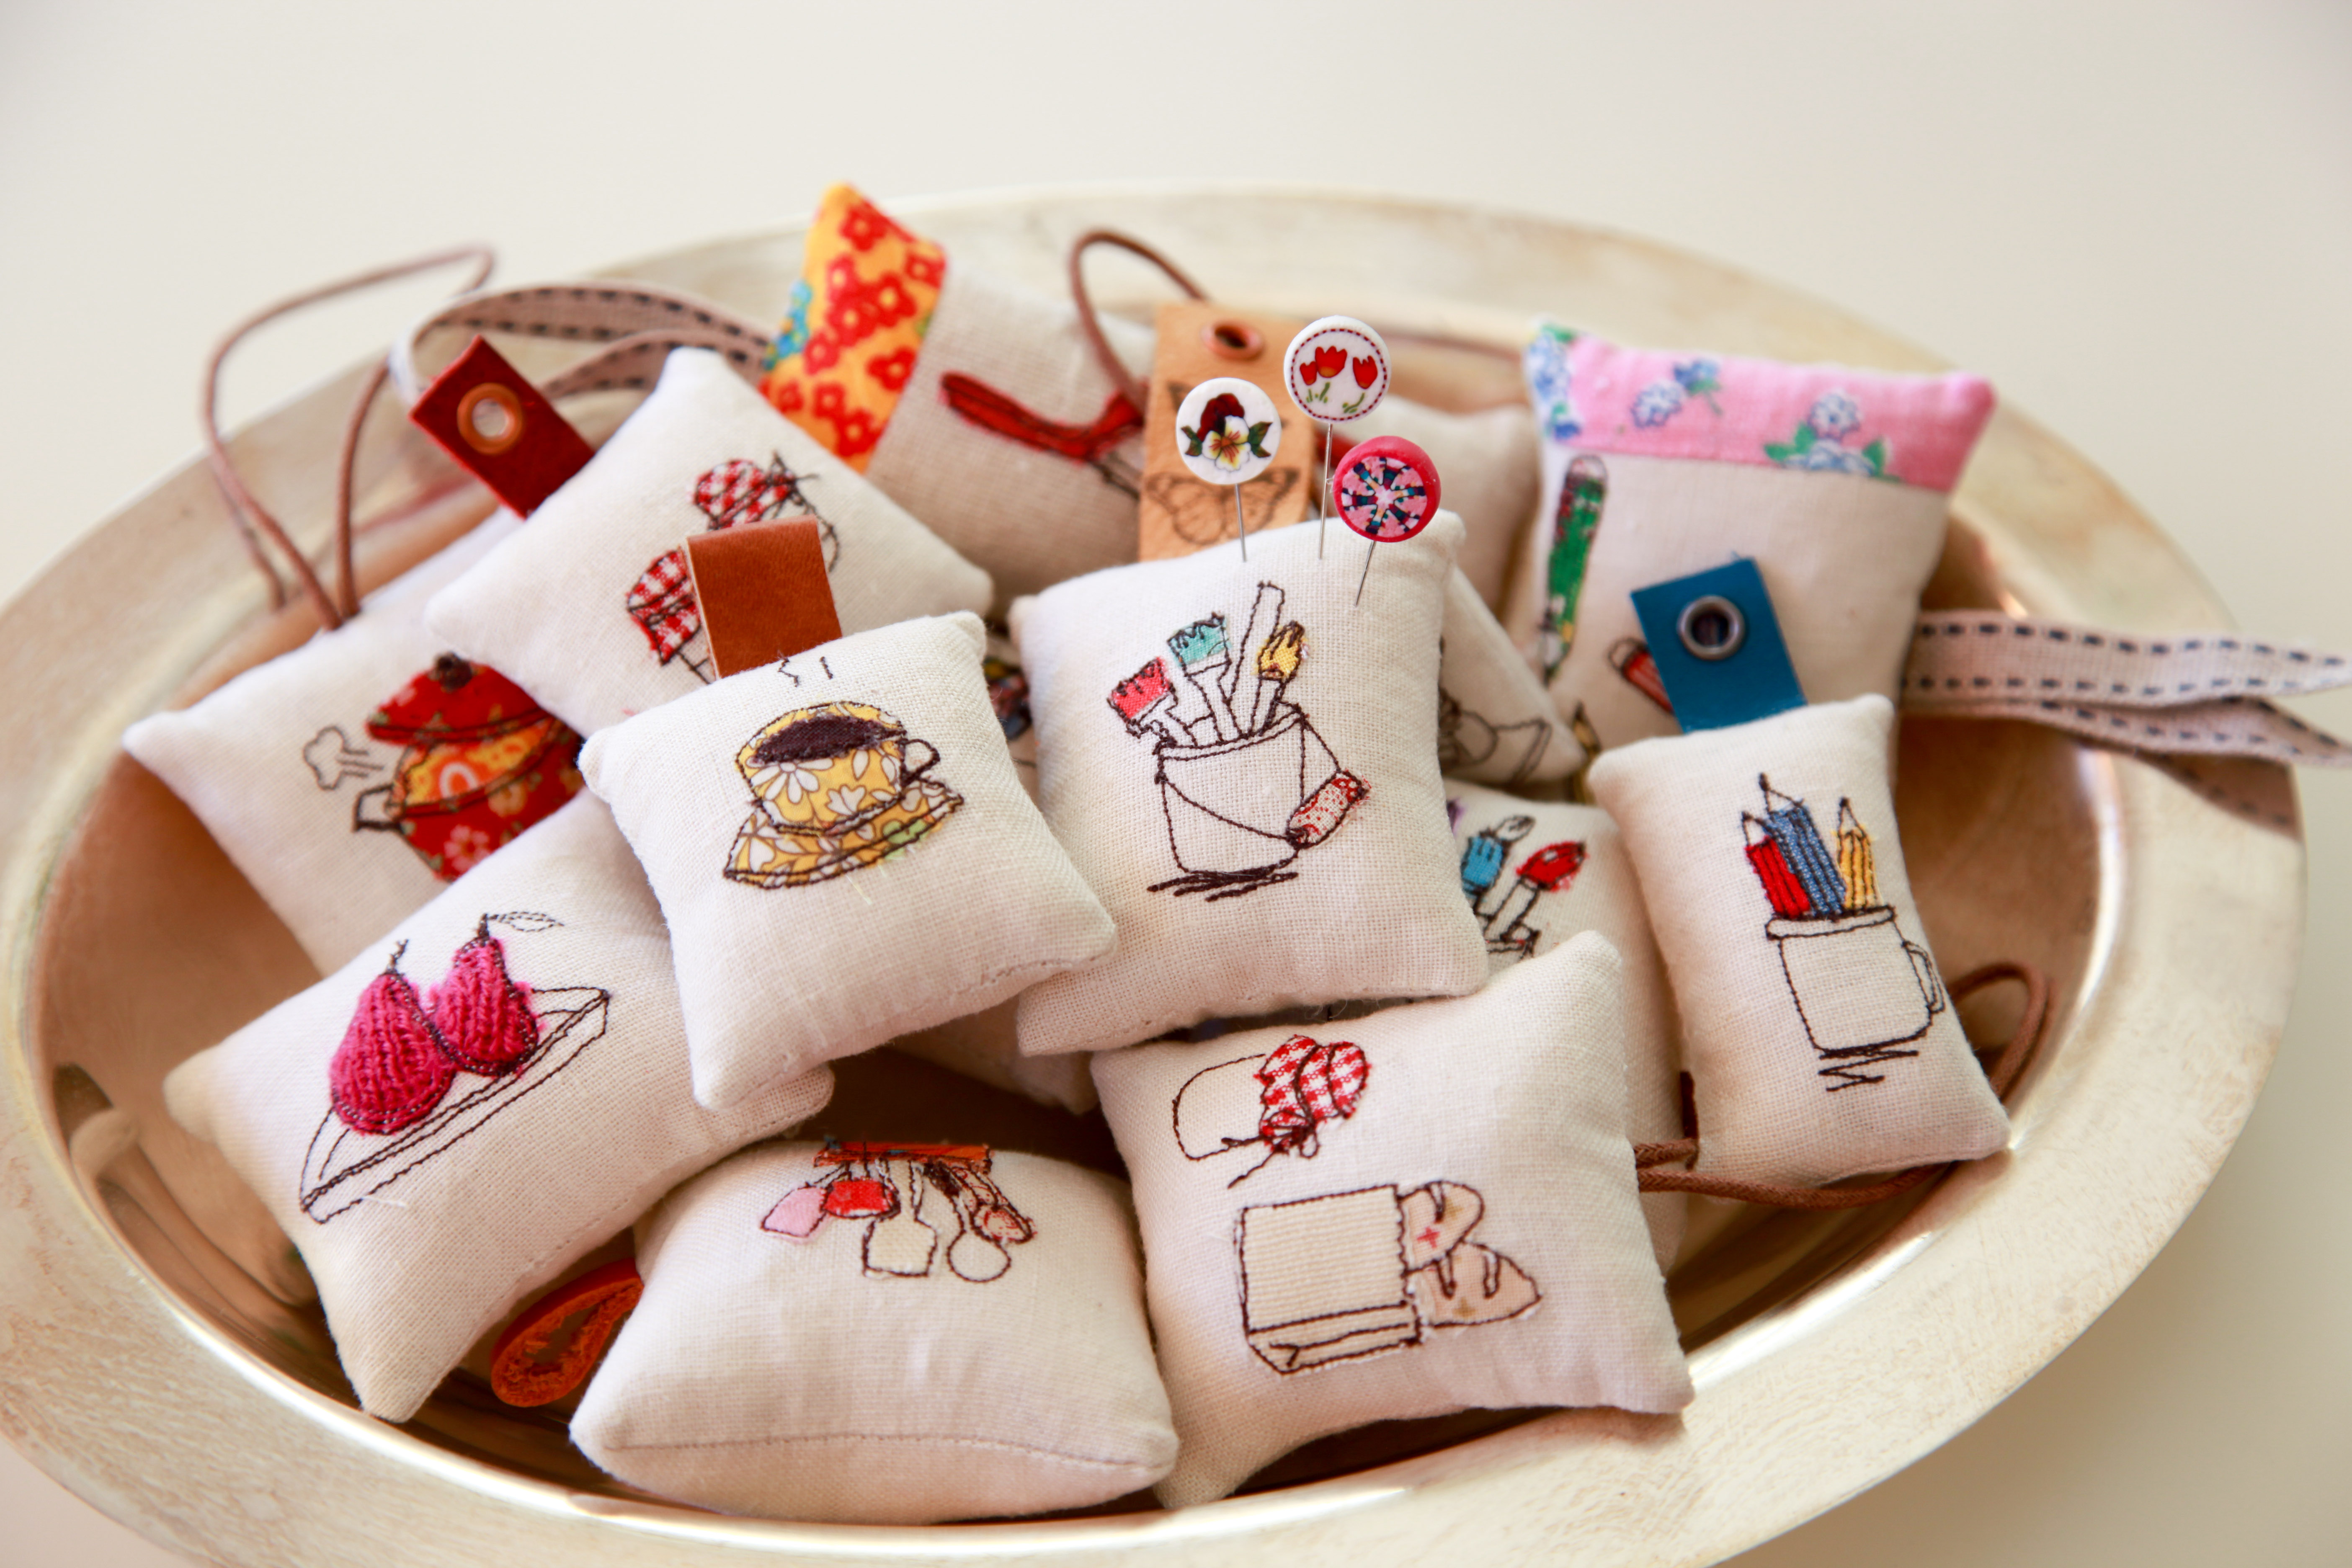 Best mom cushion cover valentineblog net - Today I Want To Share My Mini Pin Cushion Tutorial With You I Spent